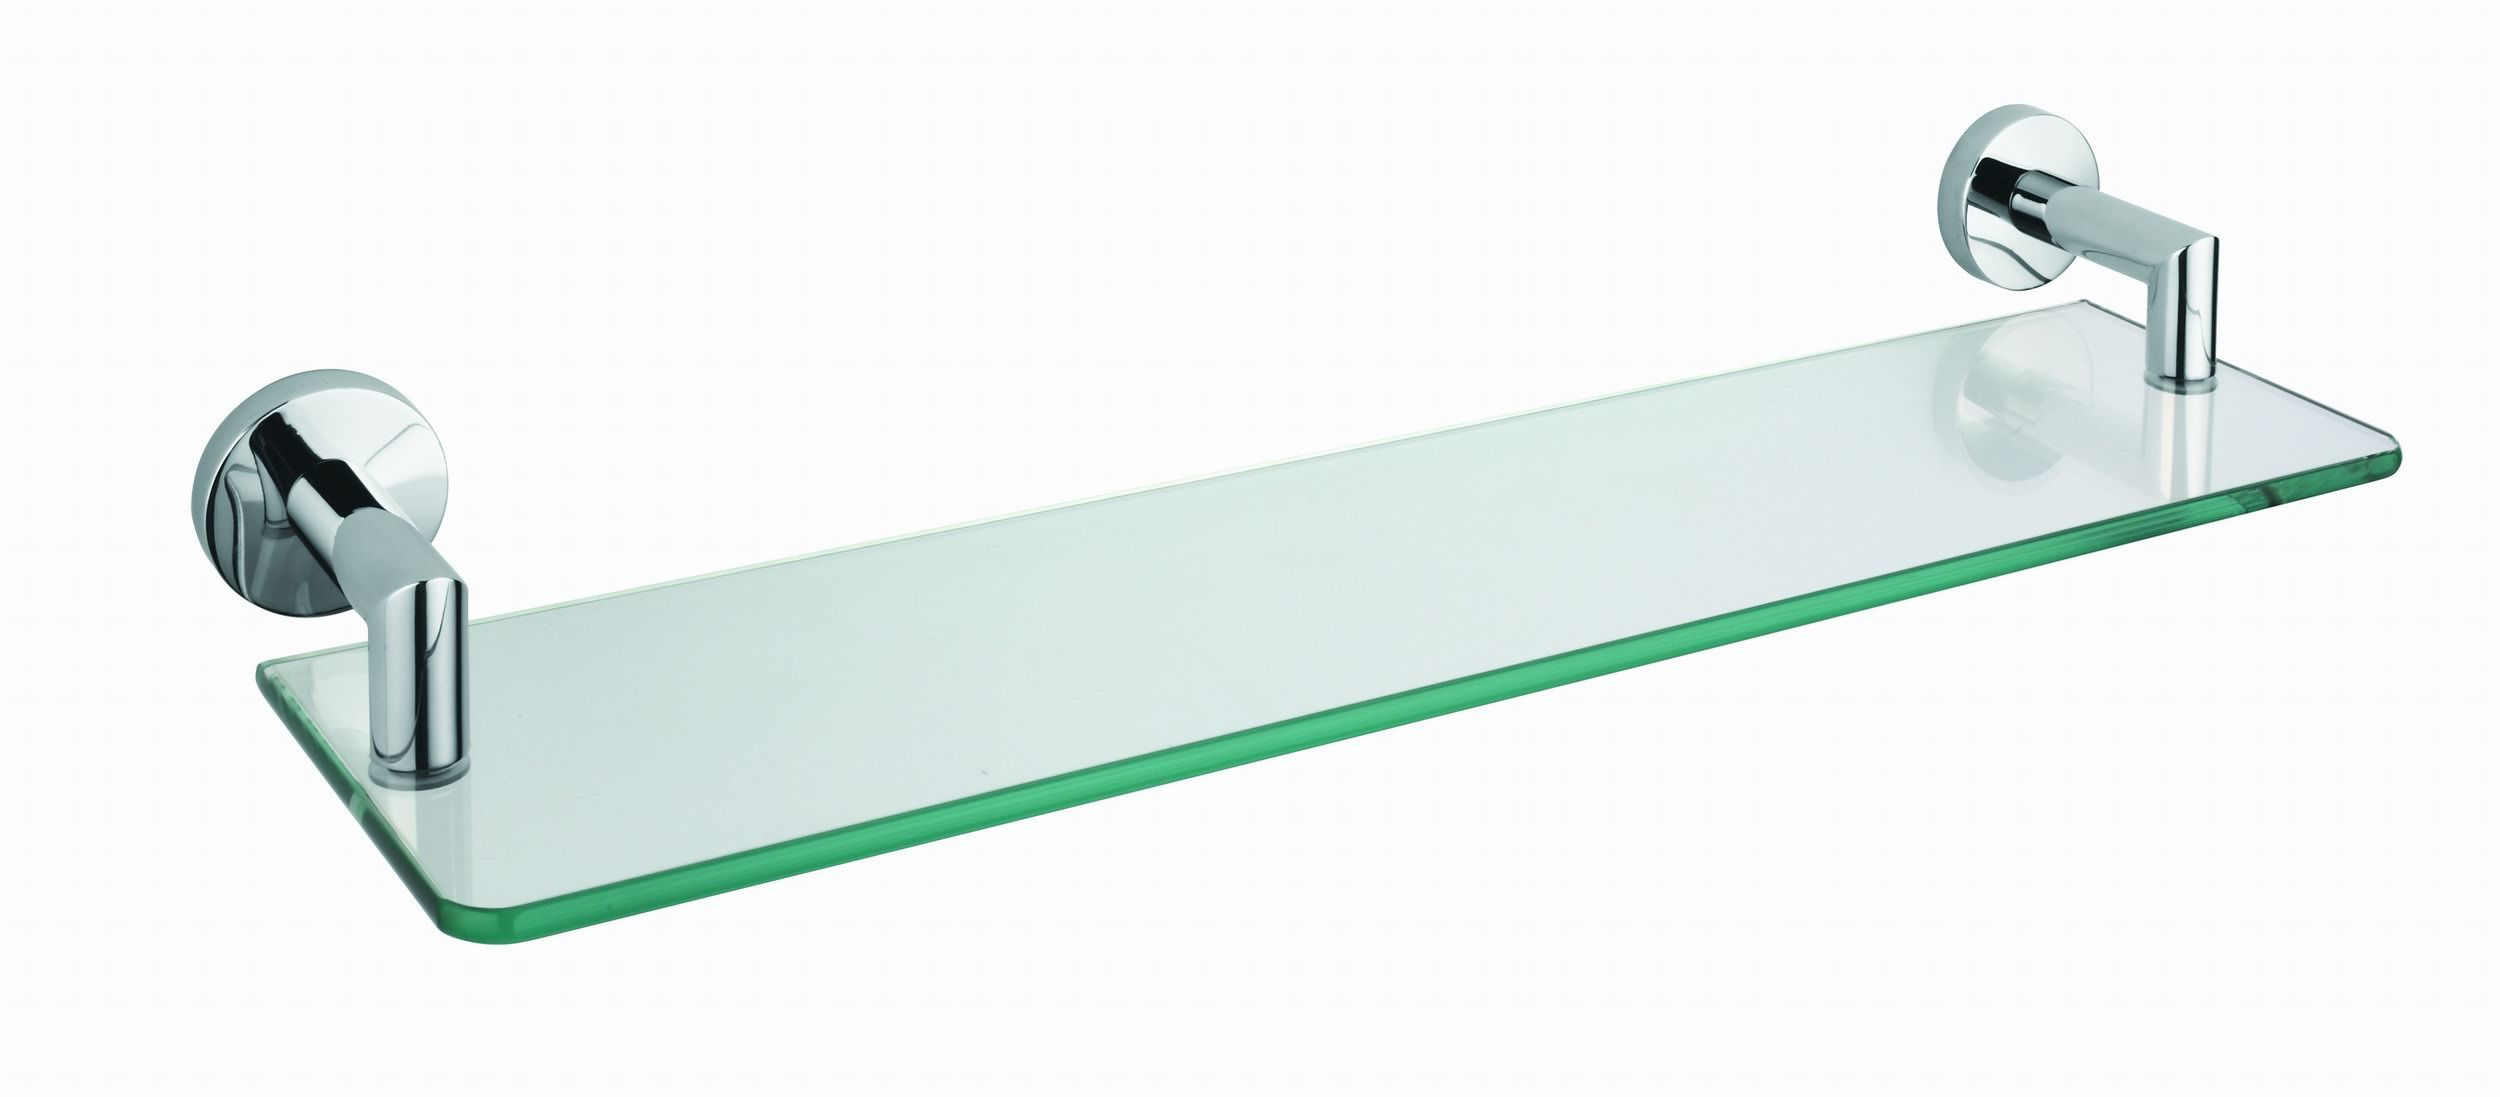 Glass Shelf : China Glass Shelves - China Glass Shelves, Tempered Glass